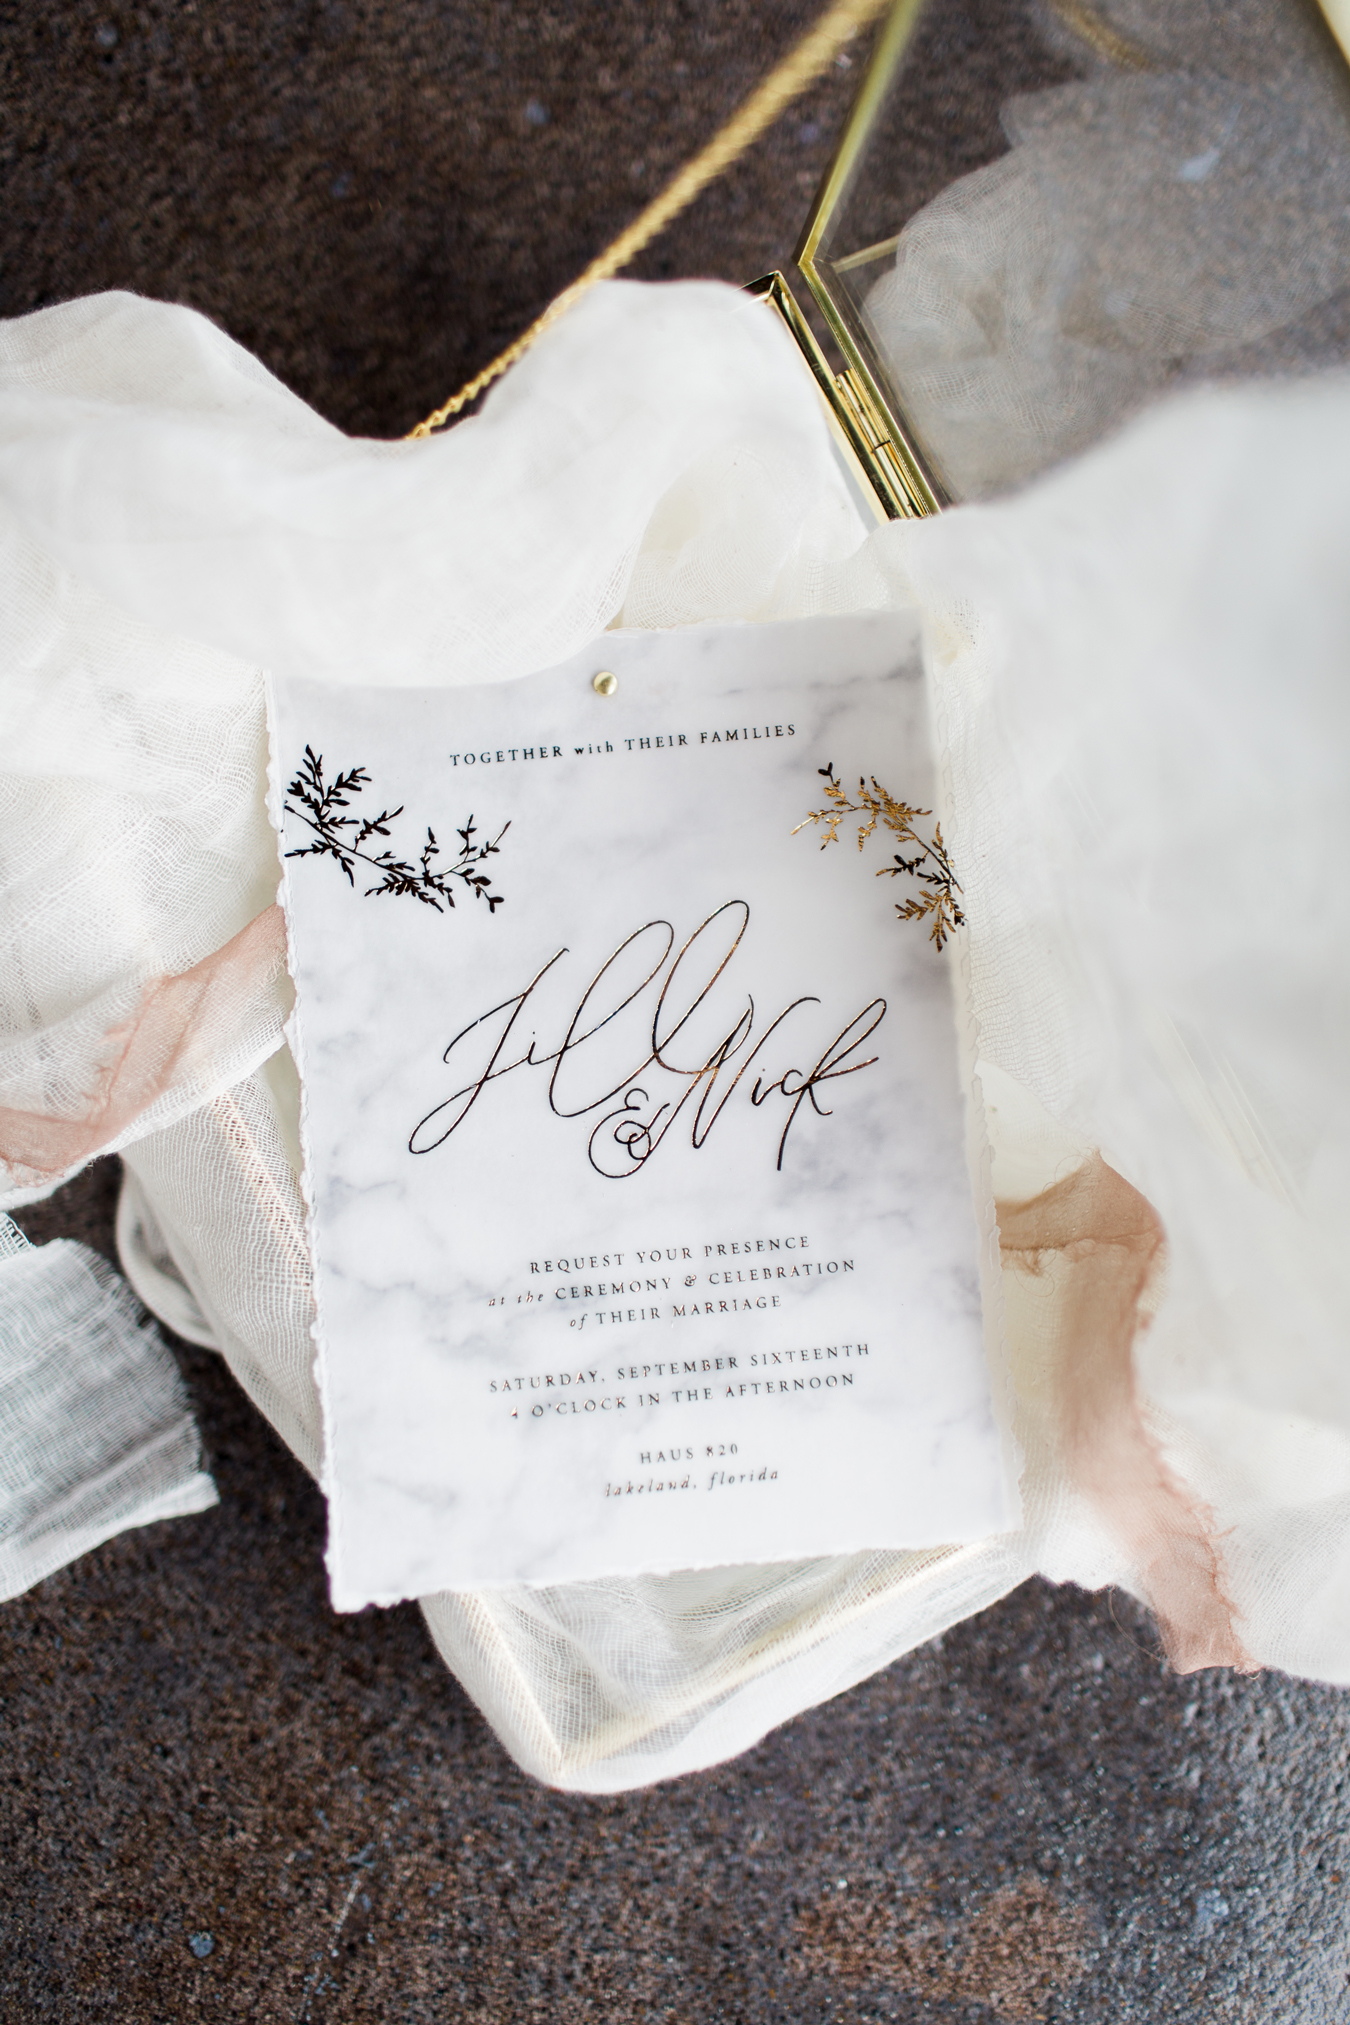 stationary with subtle white marble design and gold writing